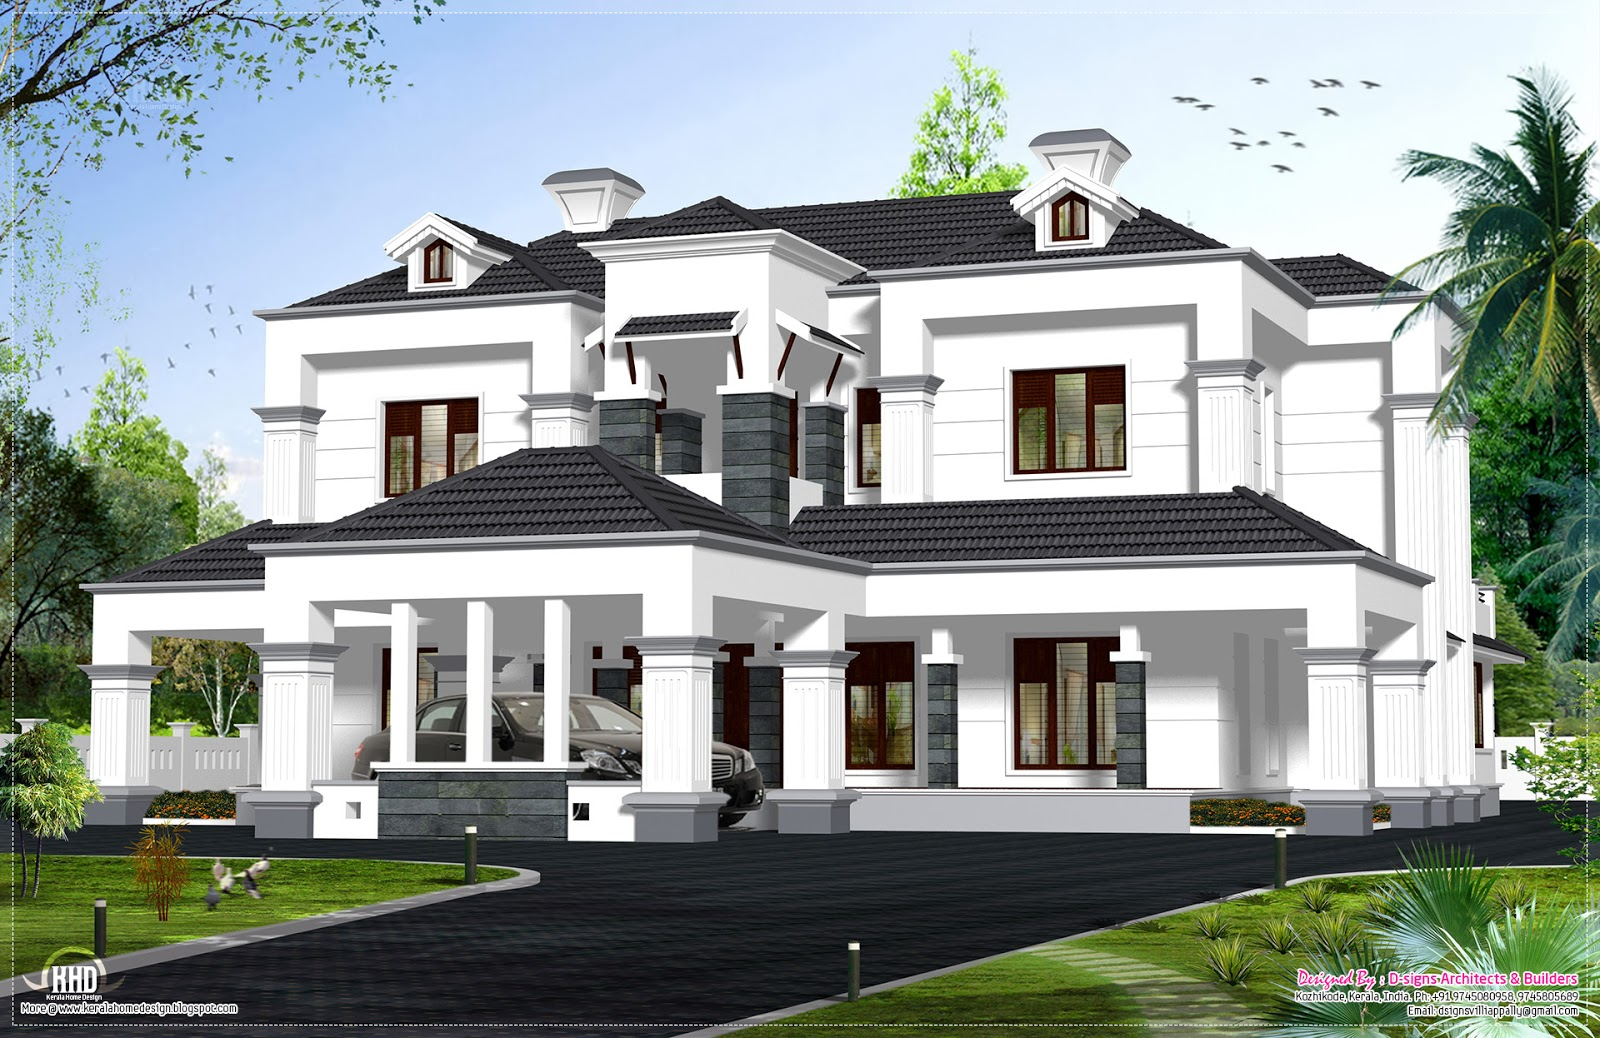 Victorian model house exterior kerala home design and for Kerala house images gallery